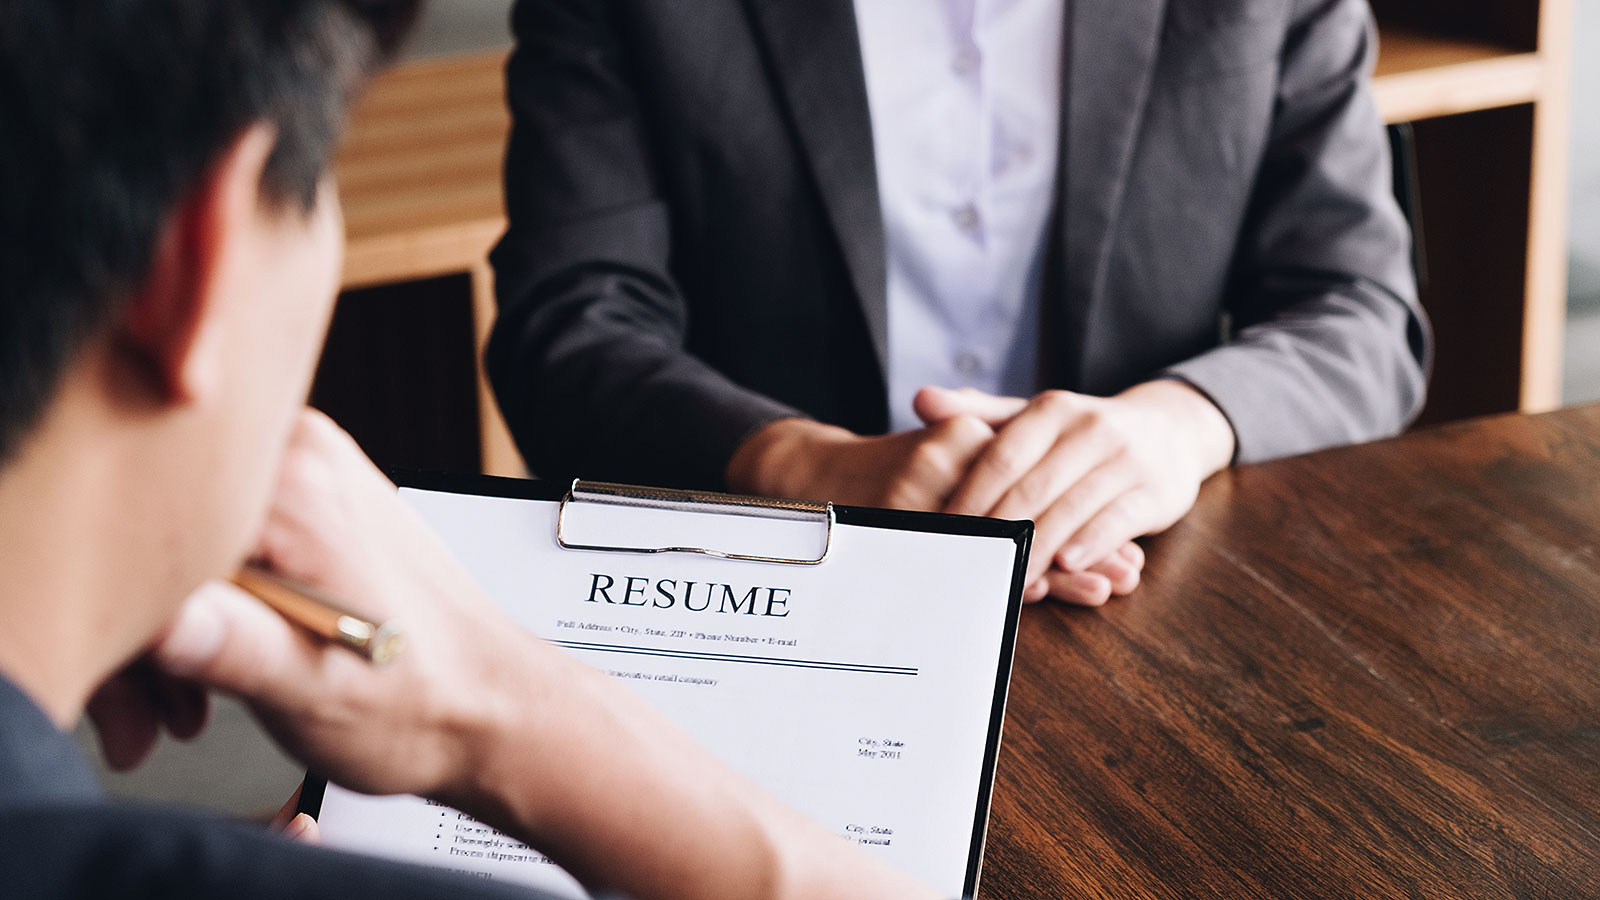 8 verbs all leaders need to have on their resume